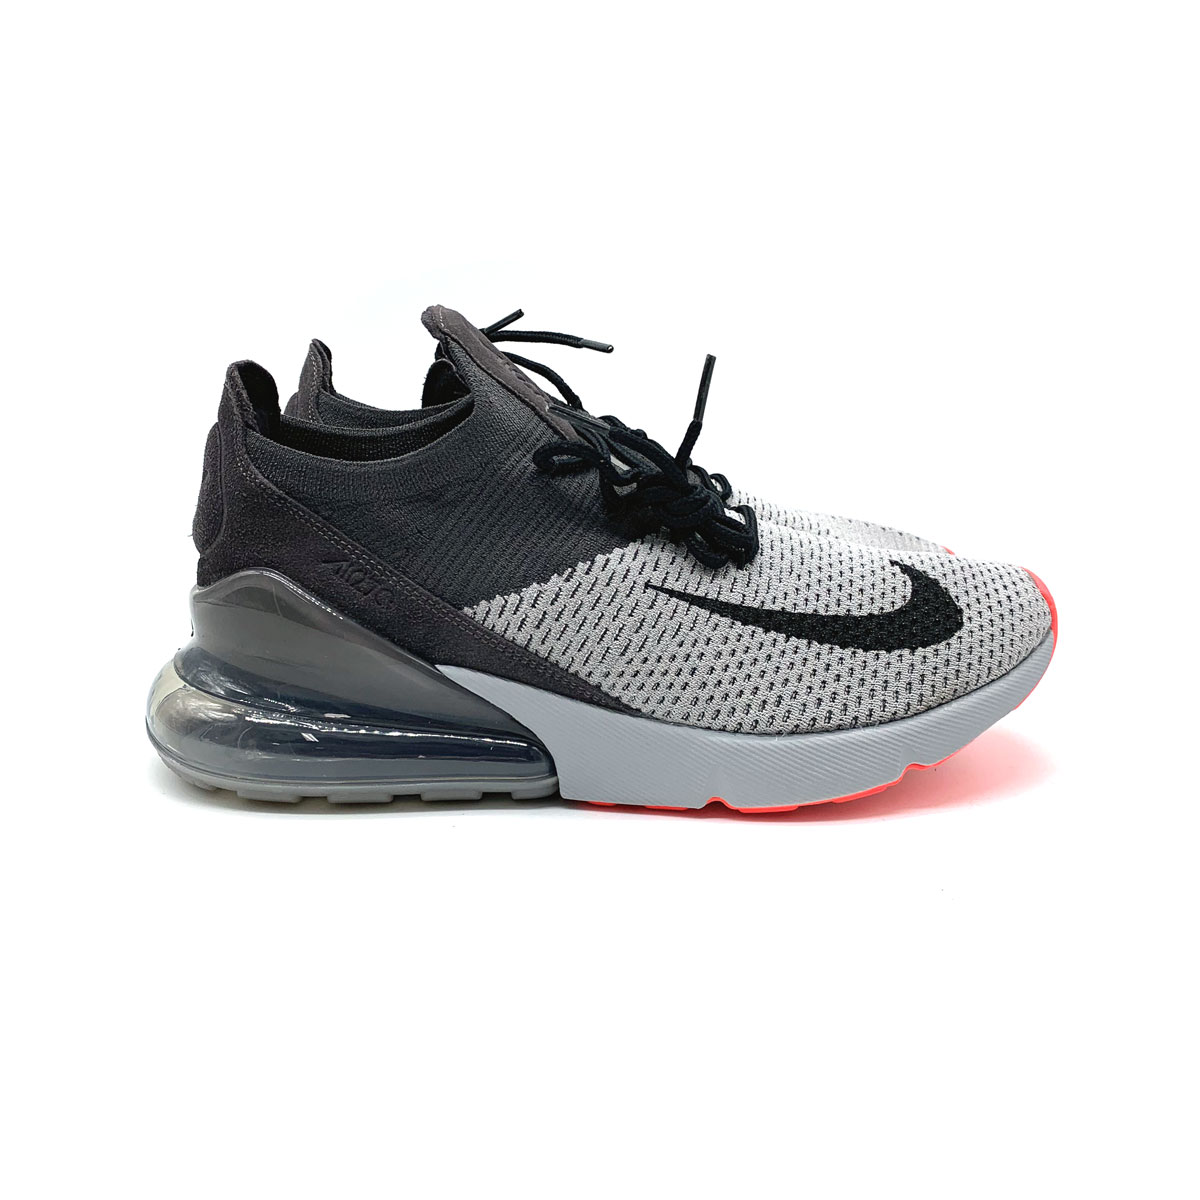 quality design 6a62b d1e88 Details about Nike Air Max 270 Flyknit Atmosphere Grey Thunder Grey Running  Shoes